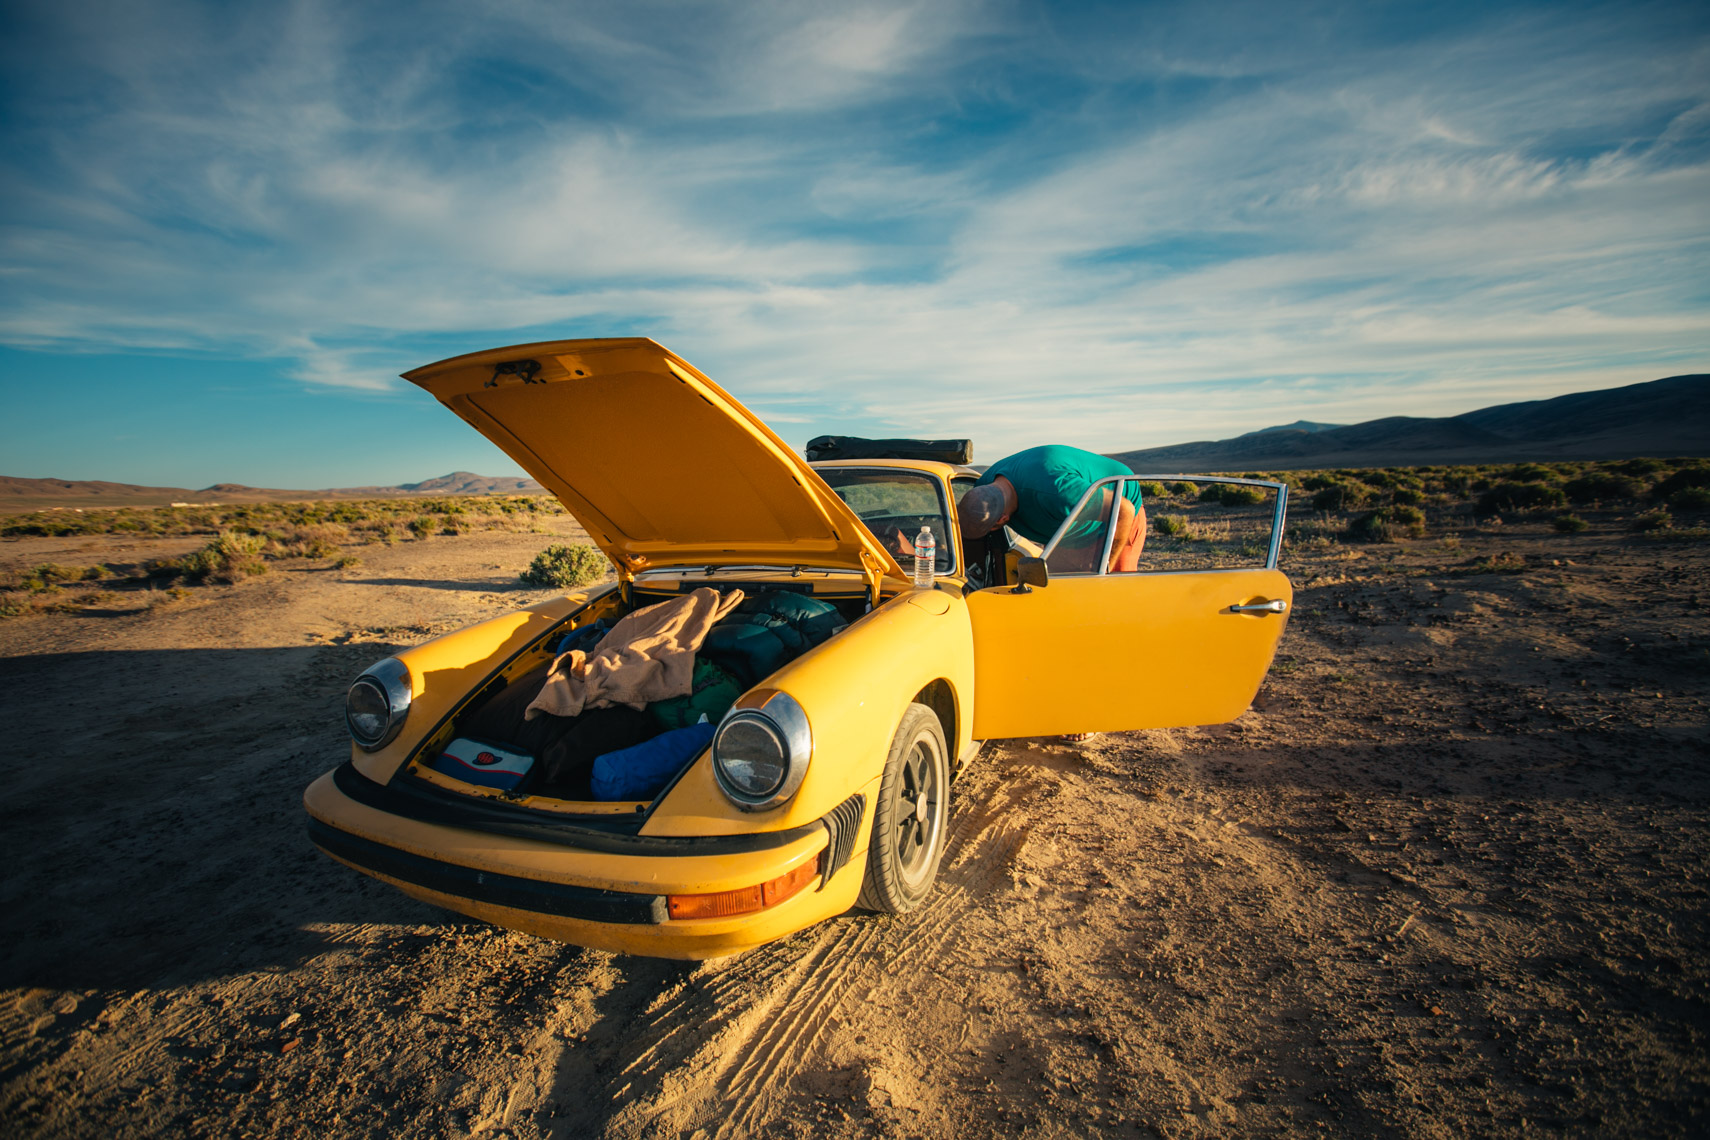 Porsche 911 in the desert